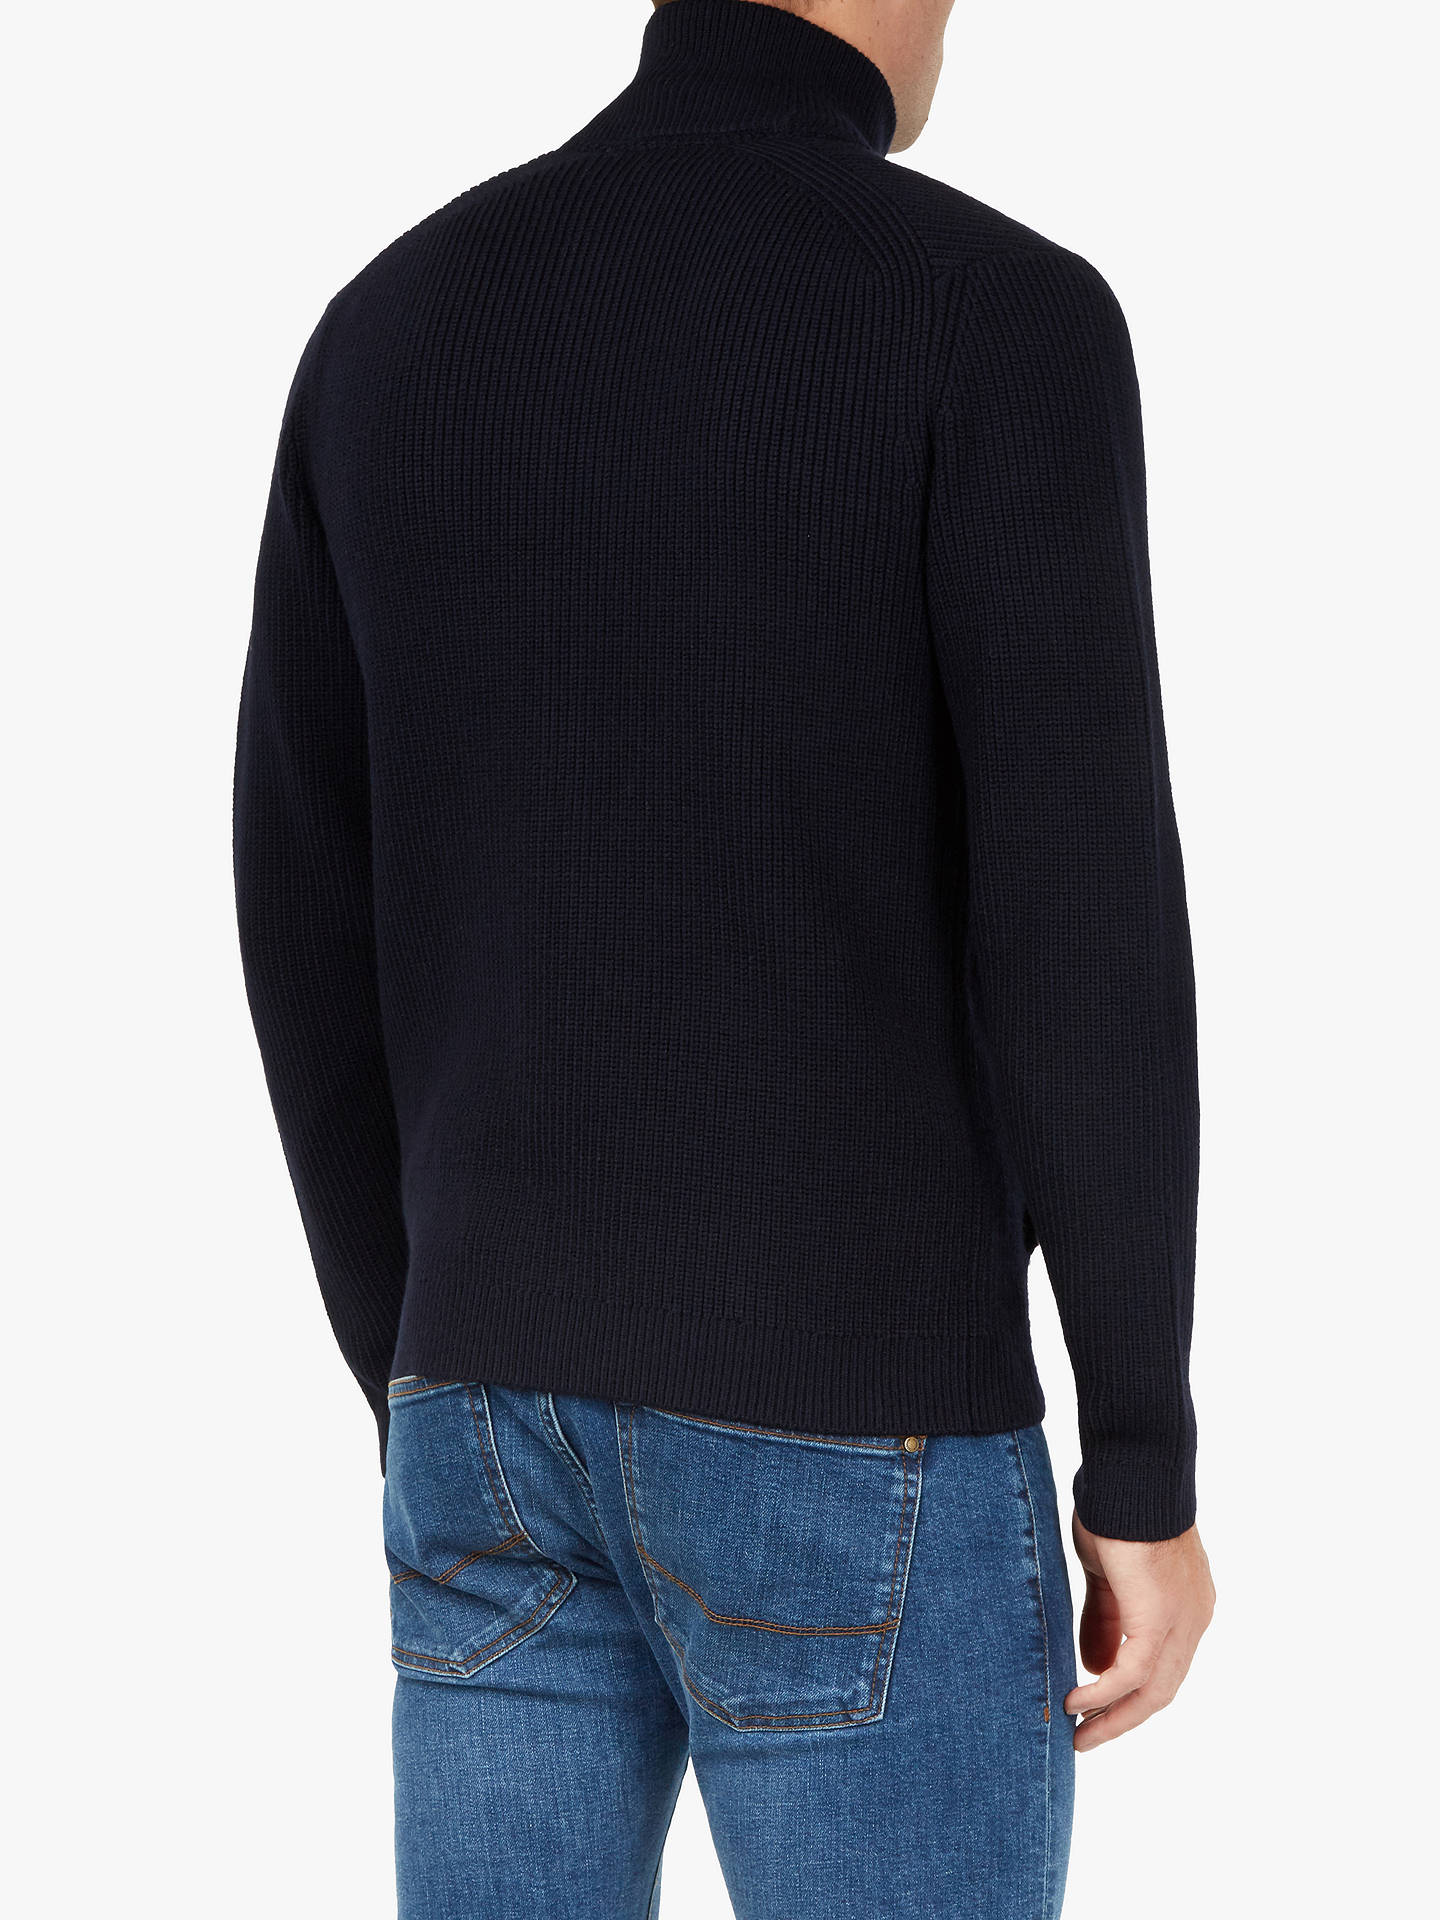 BuyTed Baker Saltcar Ribbed Zip Cardigan, Navy, M Online at johnlewis.com